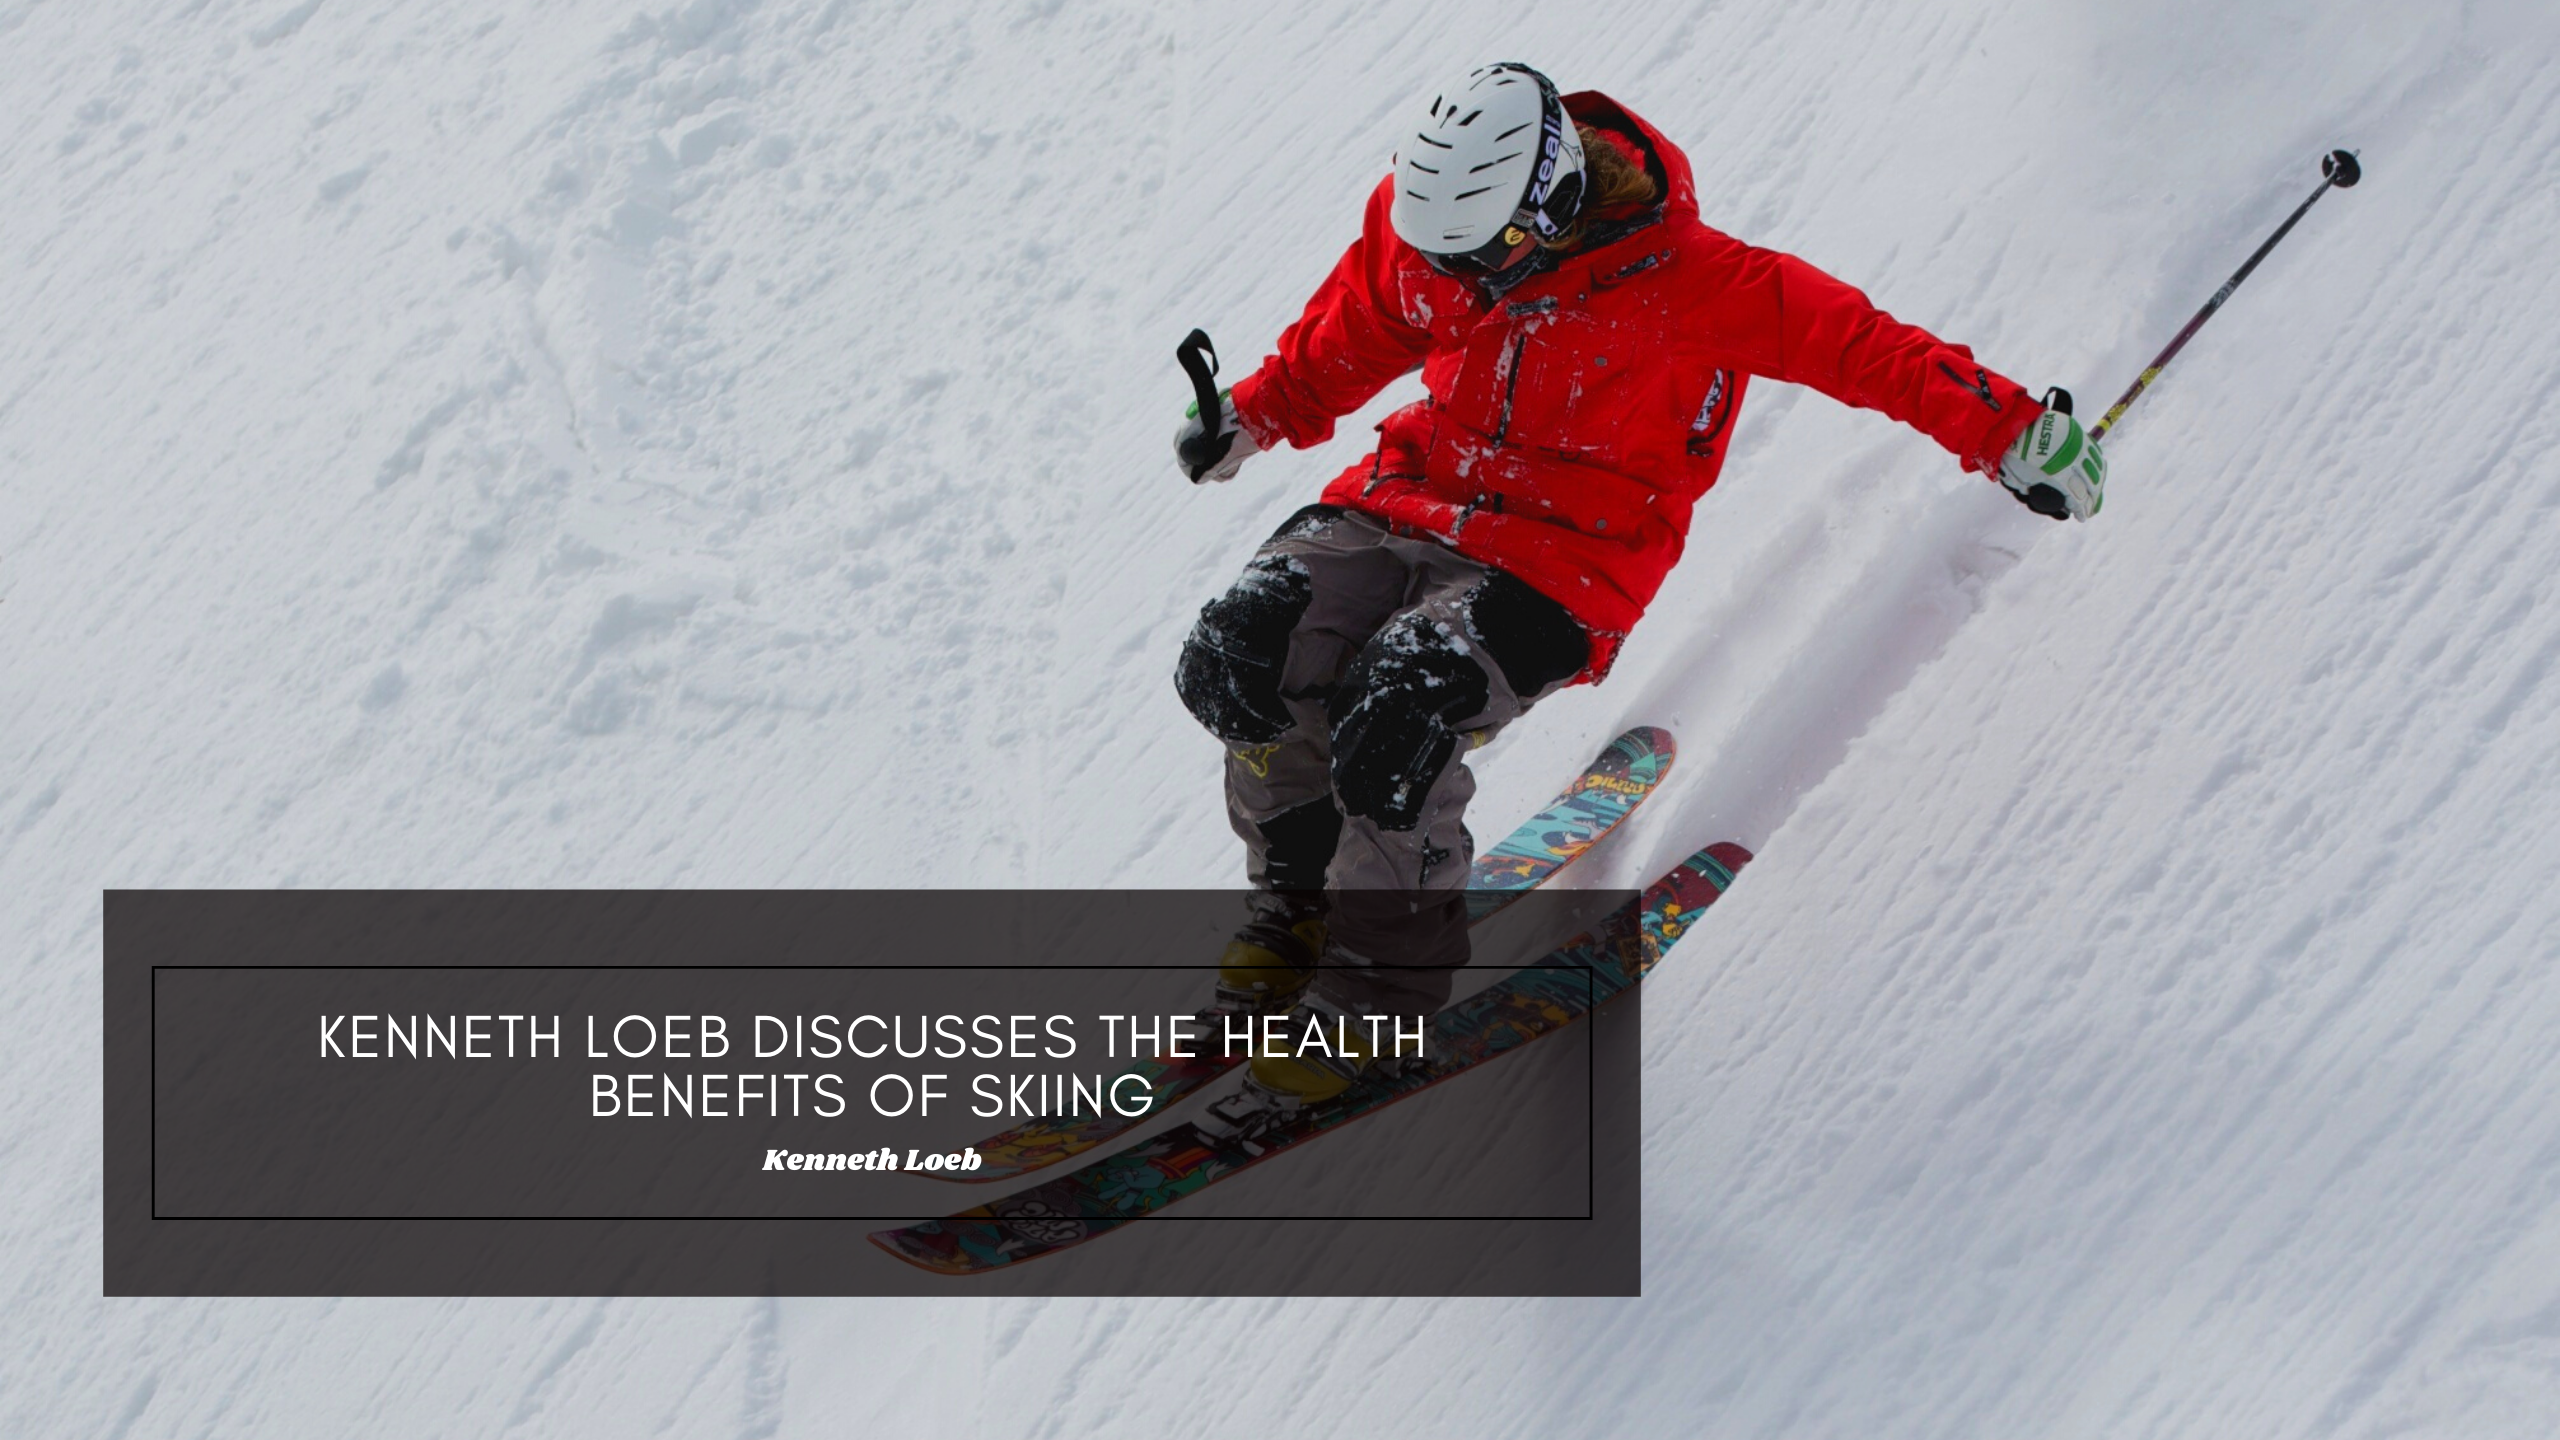 Kenneth Loeb Discusses the Health Benefits of Skiing